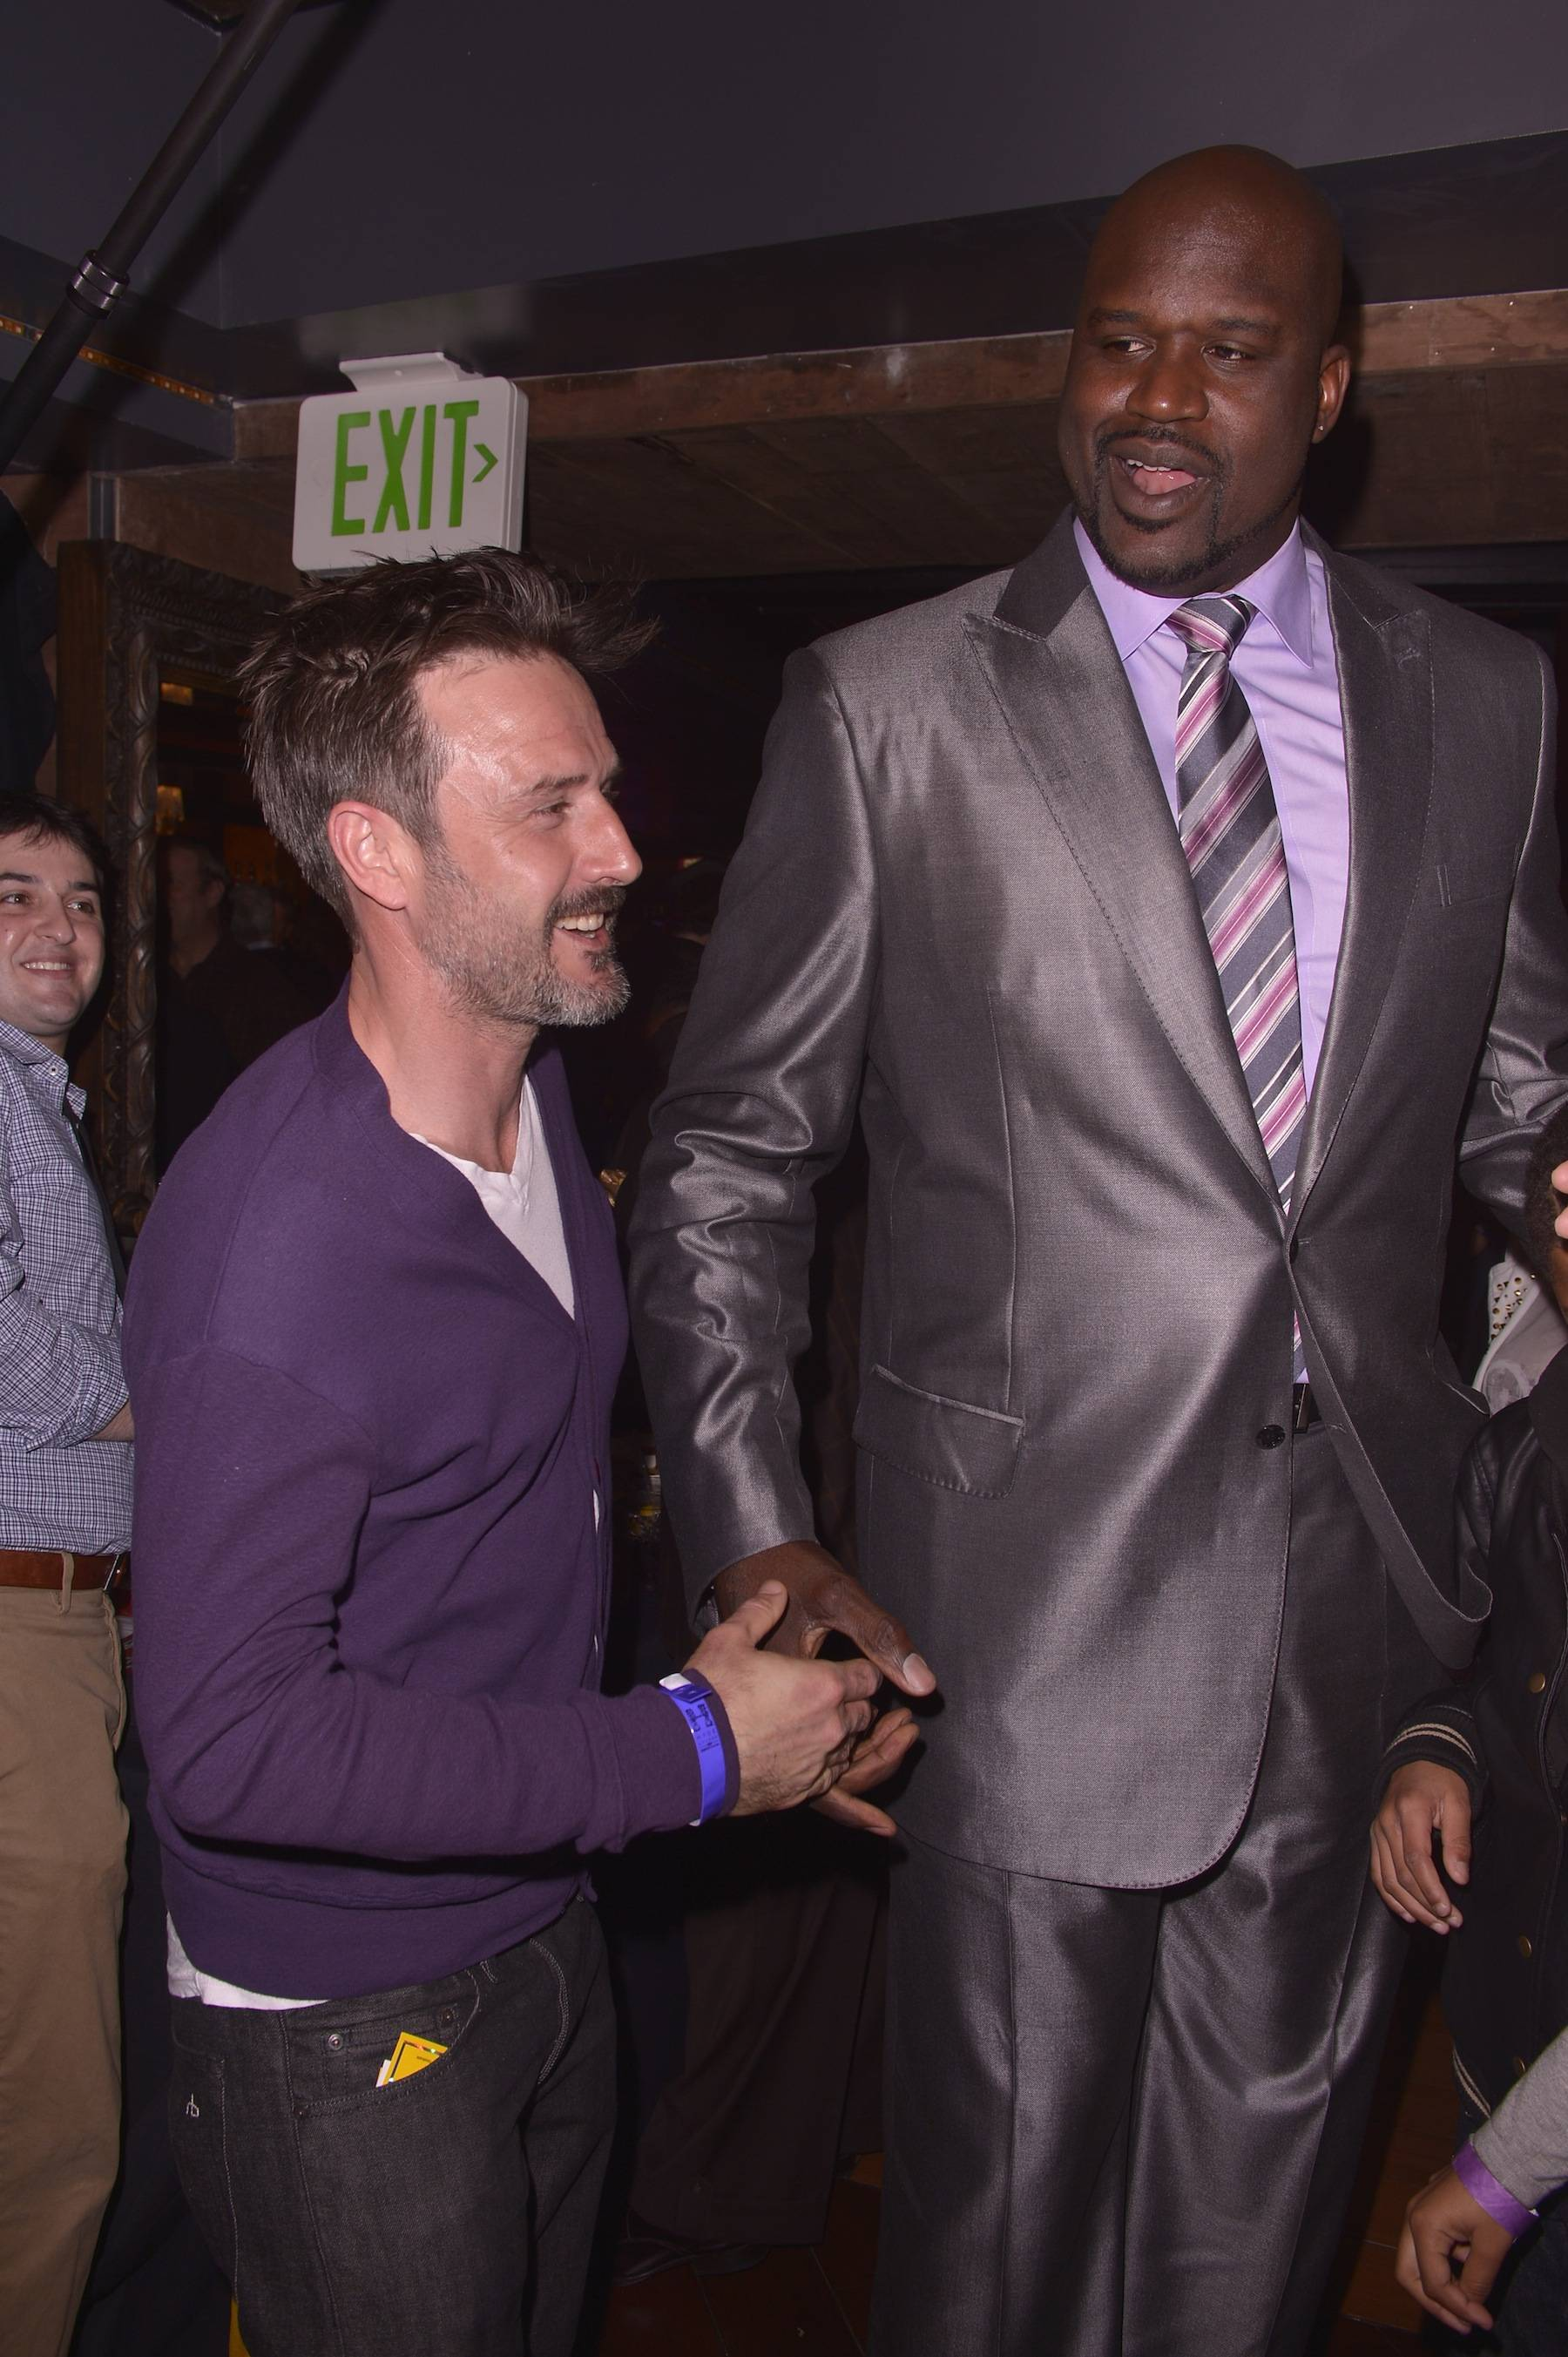 Shaquille O'Neal's Retirement of his jersey party